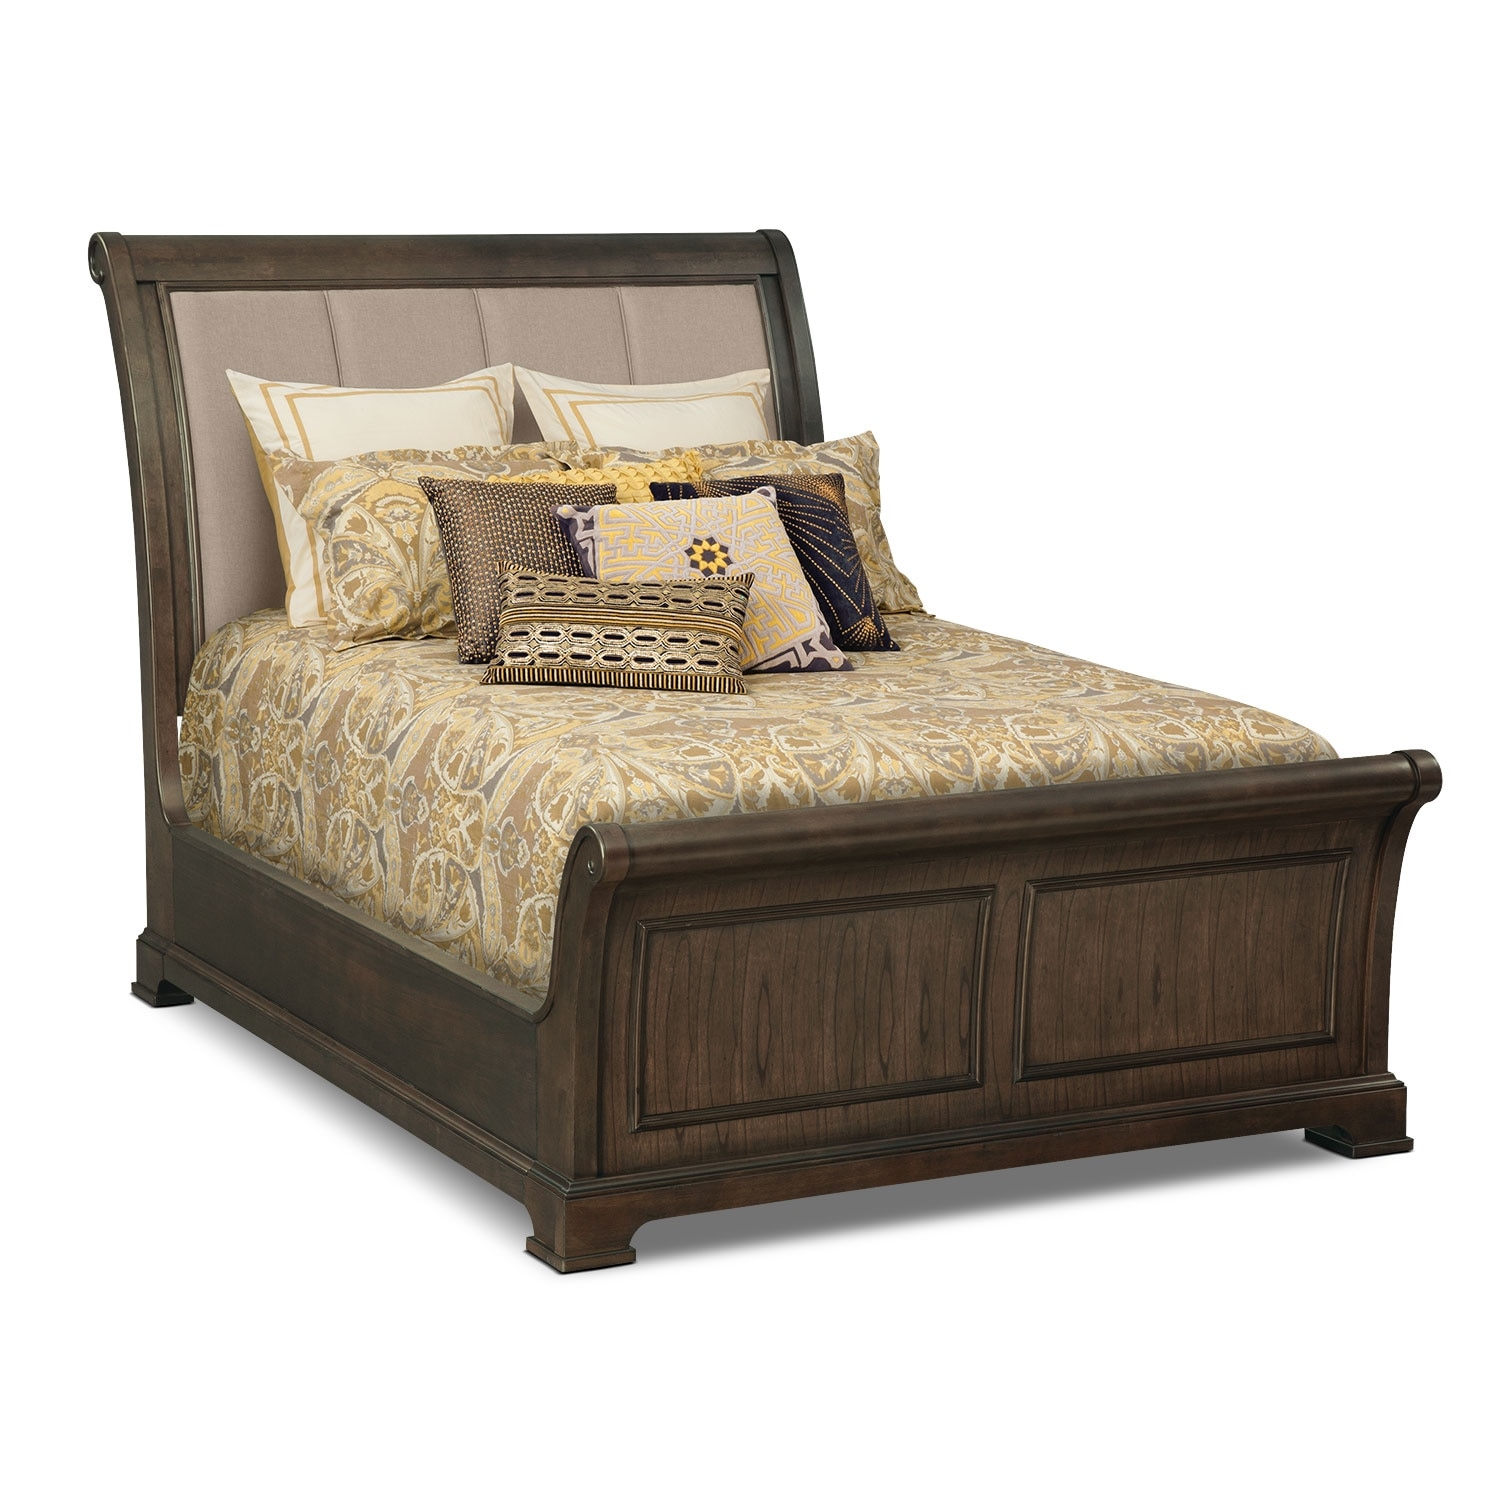 Bedroom Furniture - Collinwood Queen Bed - Brown